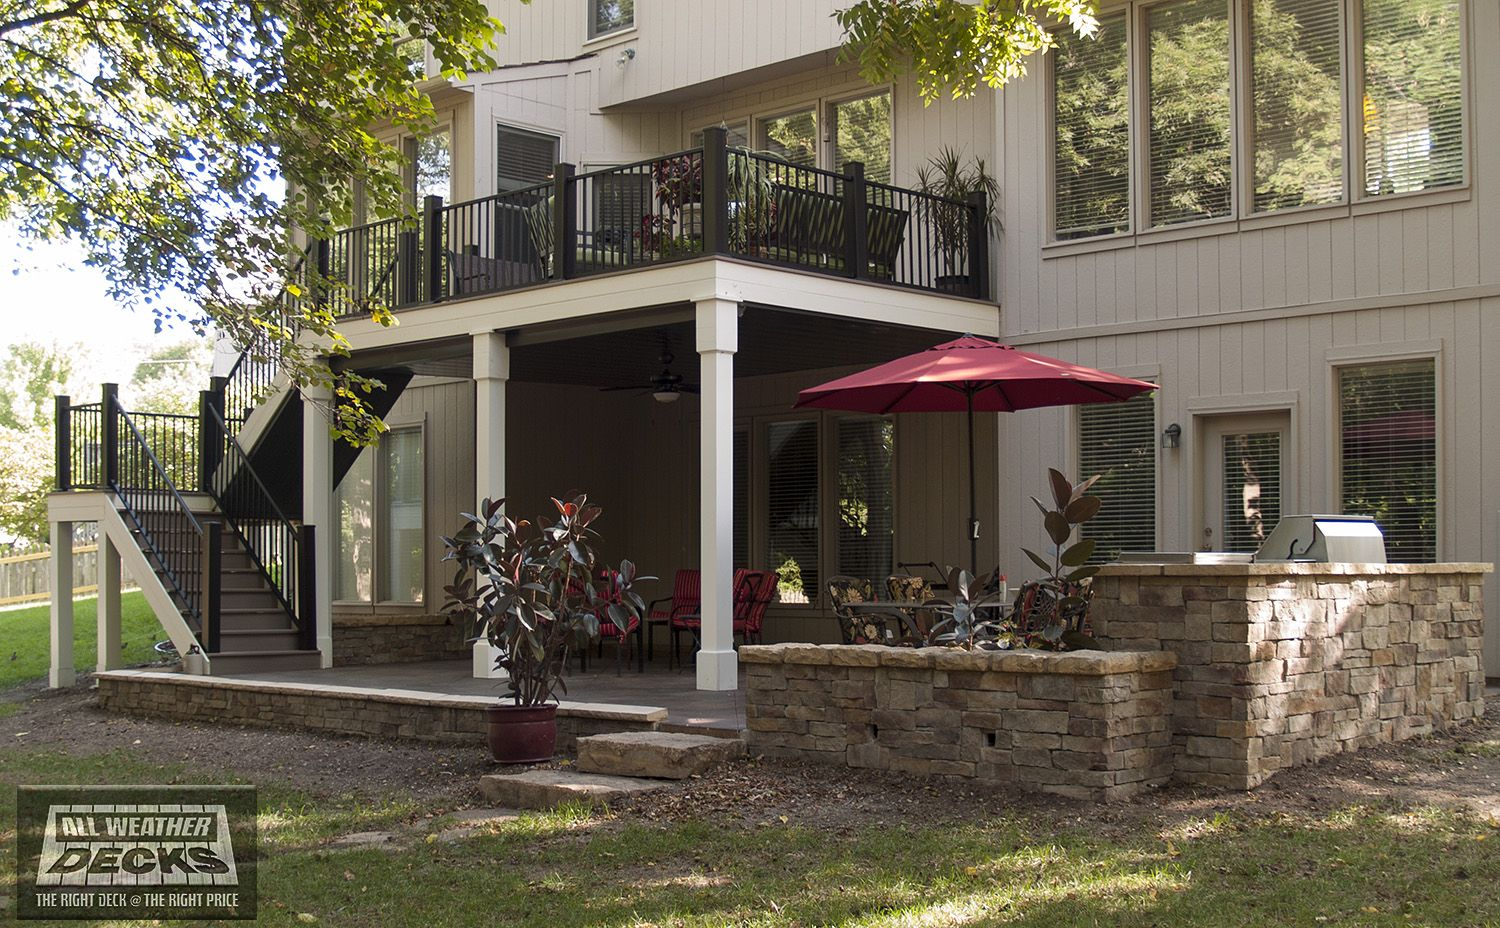 All weather decks voted 1 15 times on angie 39 s list for Under porch ideas